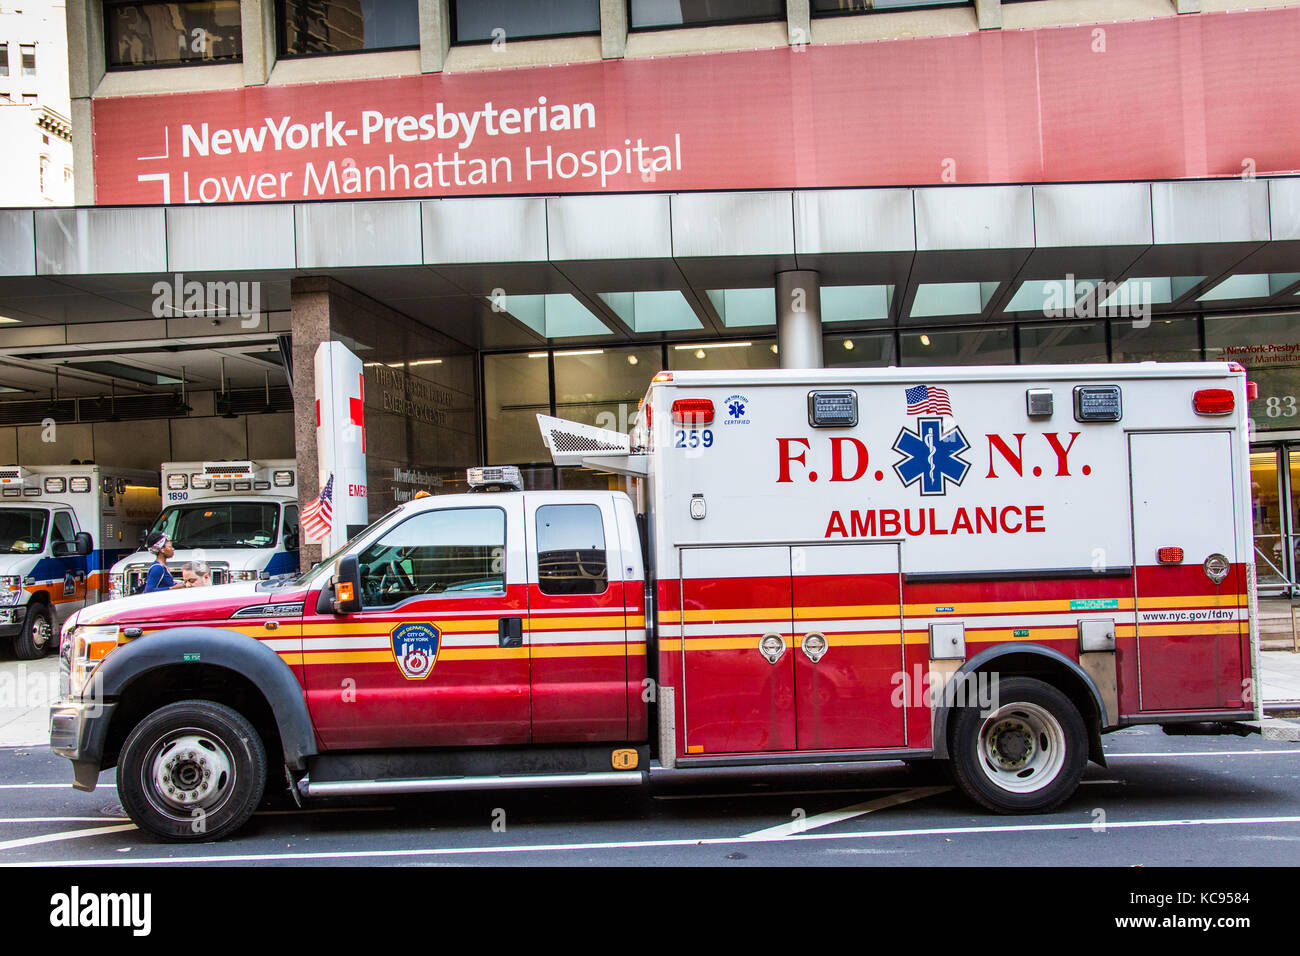 FDNY Ambulance infront of Neww York Presbyterian Hospital